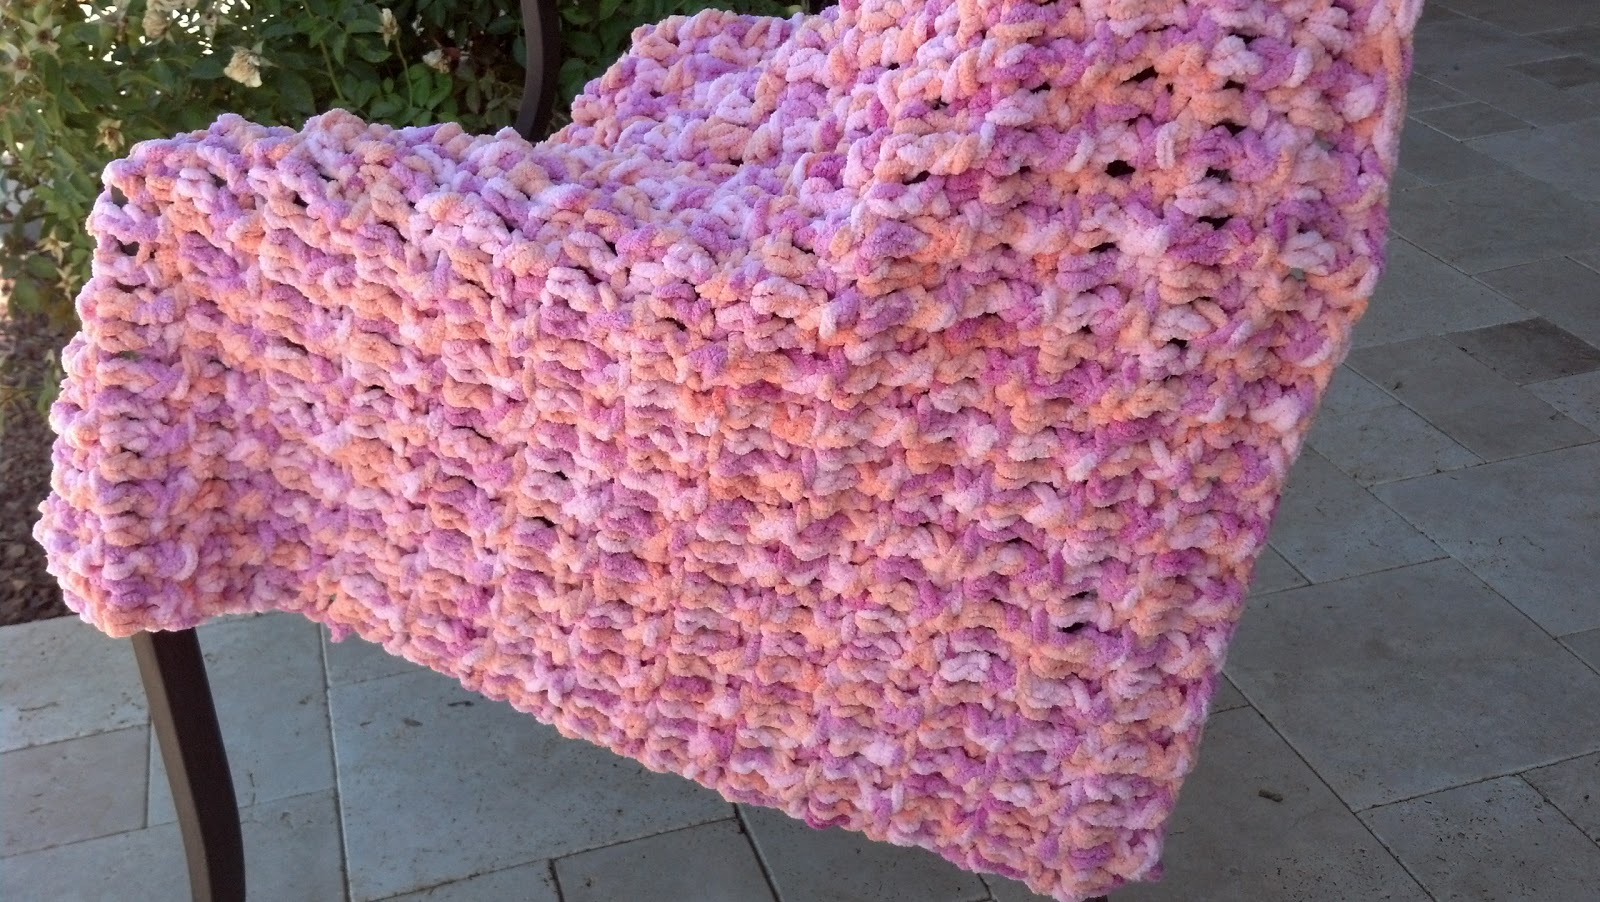 Crochet Patterns For Bernat Blanket Yarn : ... the Gap: Stash Buster Challenge - Thick & Cuddly Baby Blanket